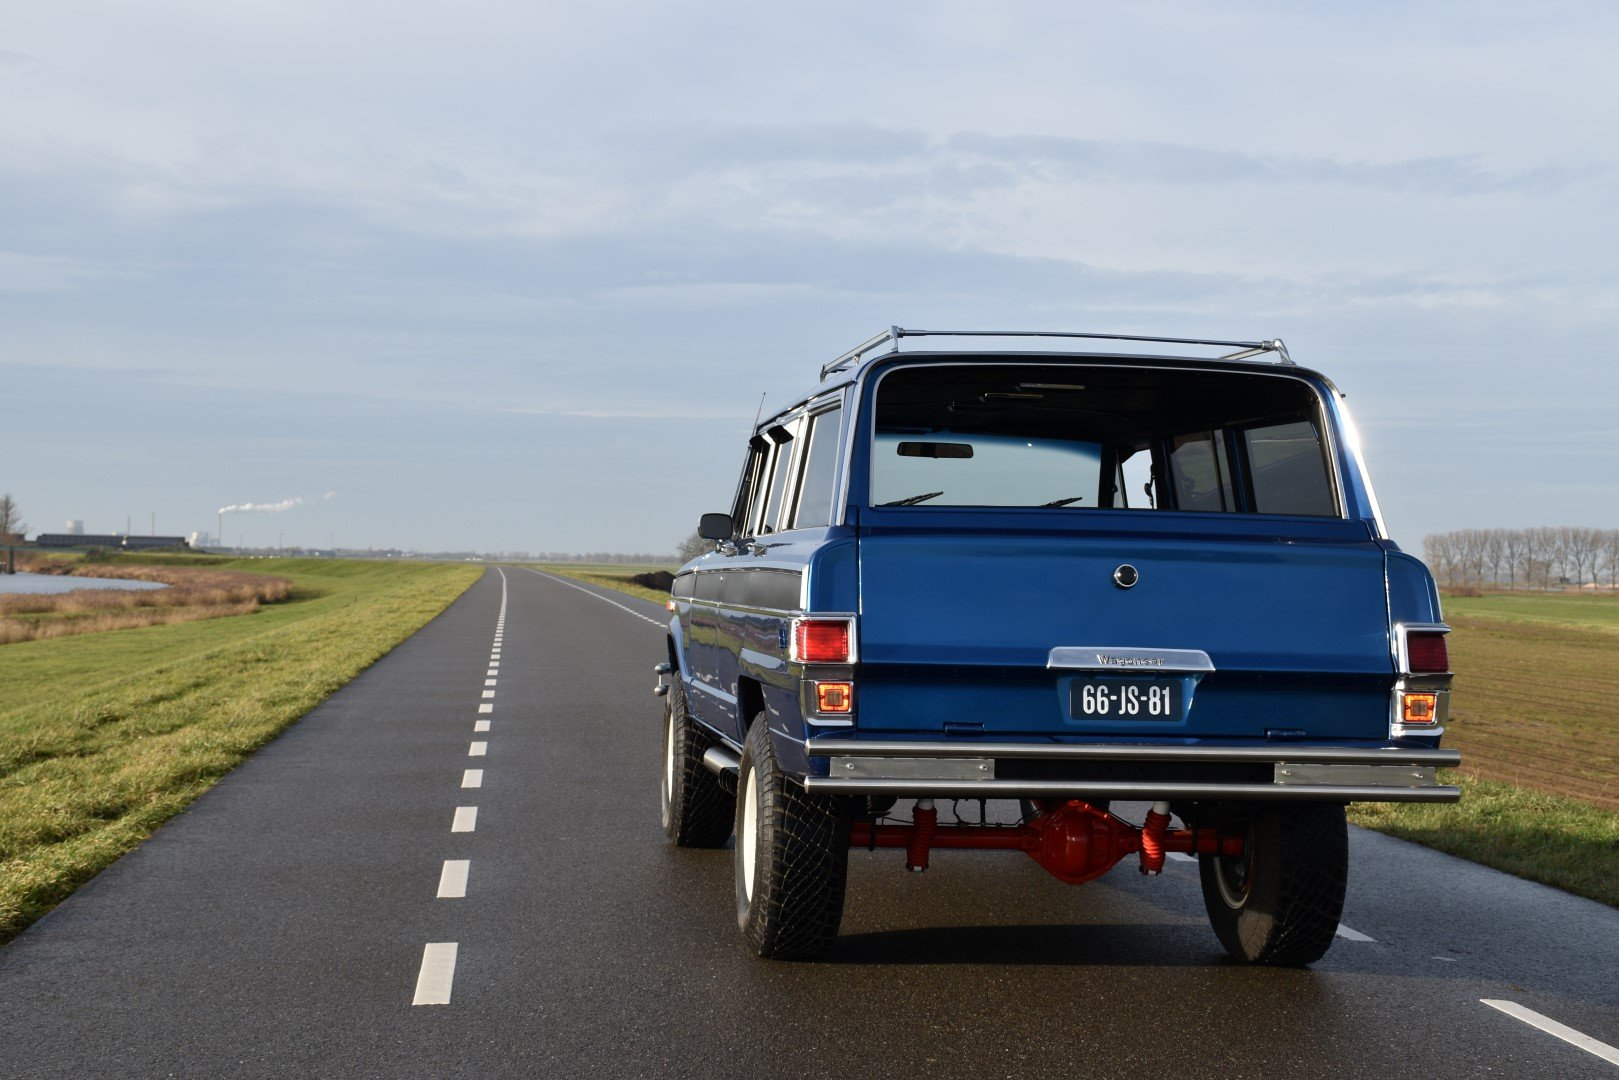 1976 Jeep Wagoneer 5.6 liter V8 For Sale (picture 6 of 6)